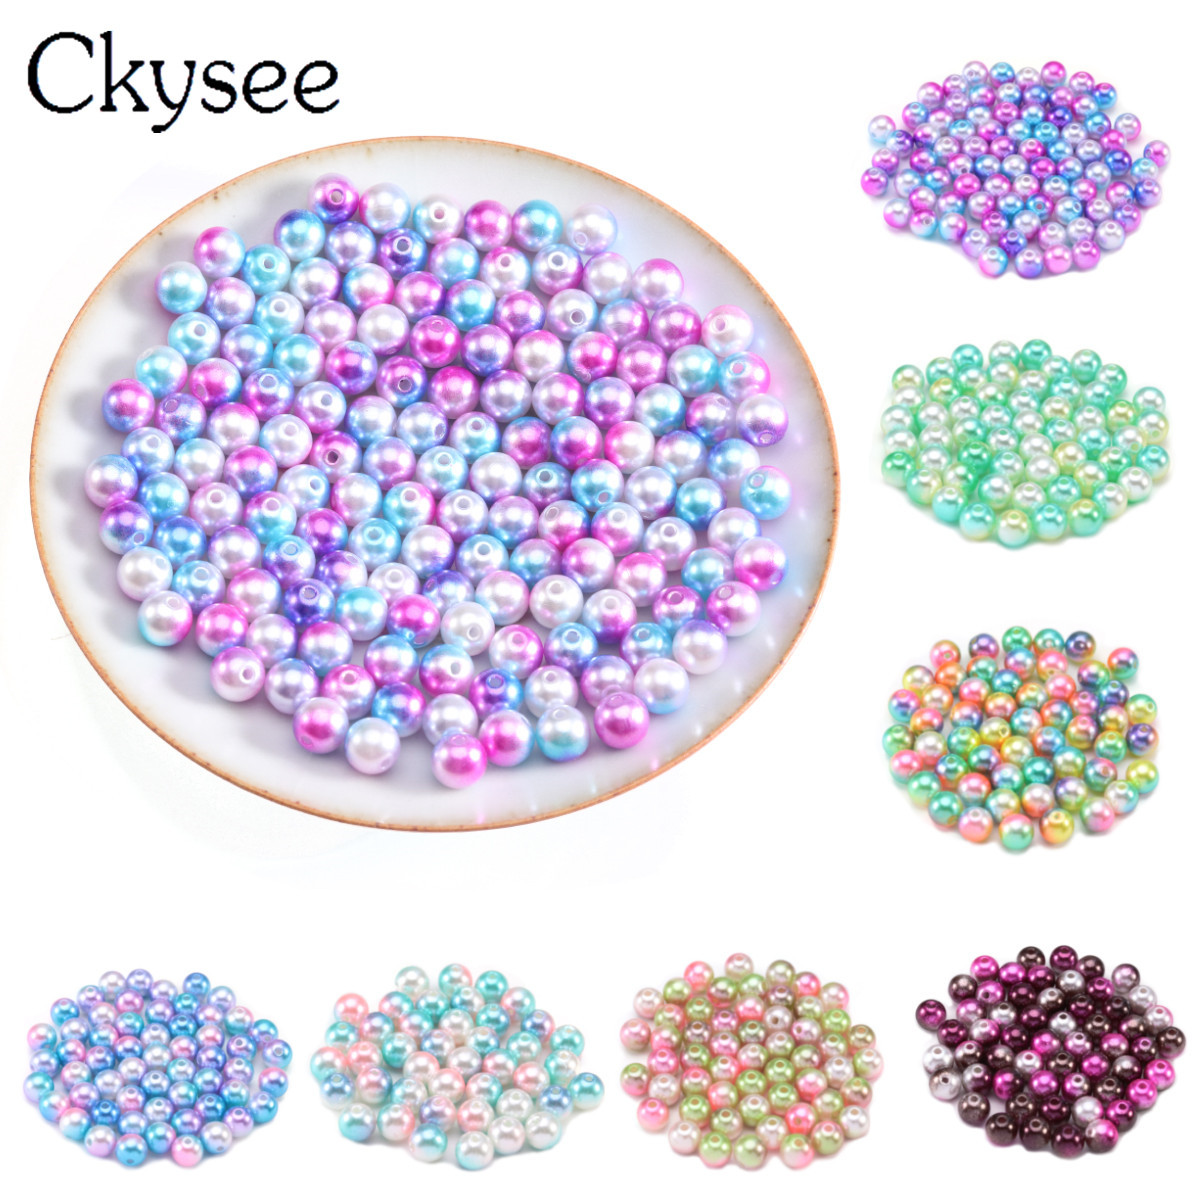 Ckysee 50-400pcs/lot Imitation Pearl Beads3 4 6 8 10 12 mm Fit Necklace Mermaid Gradient Pearls Bead For Diy Jewelry Making